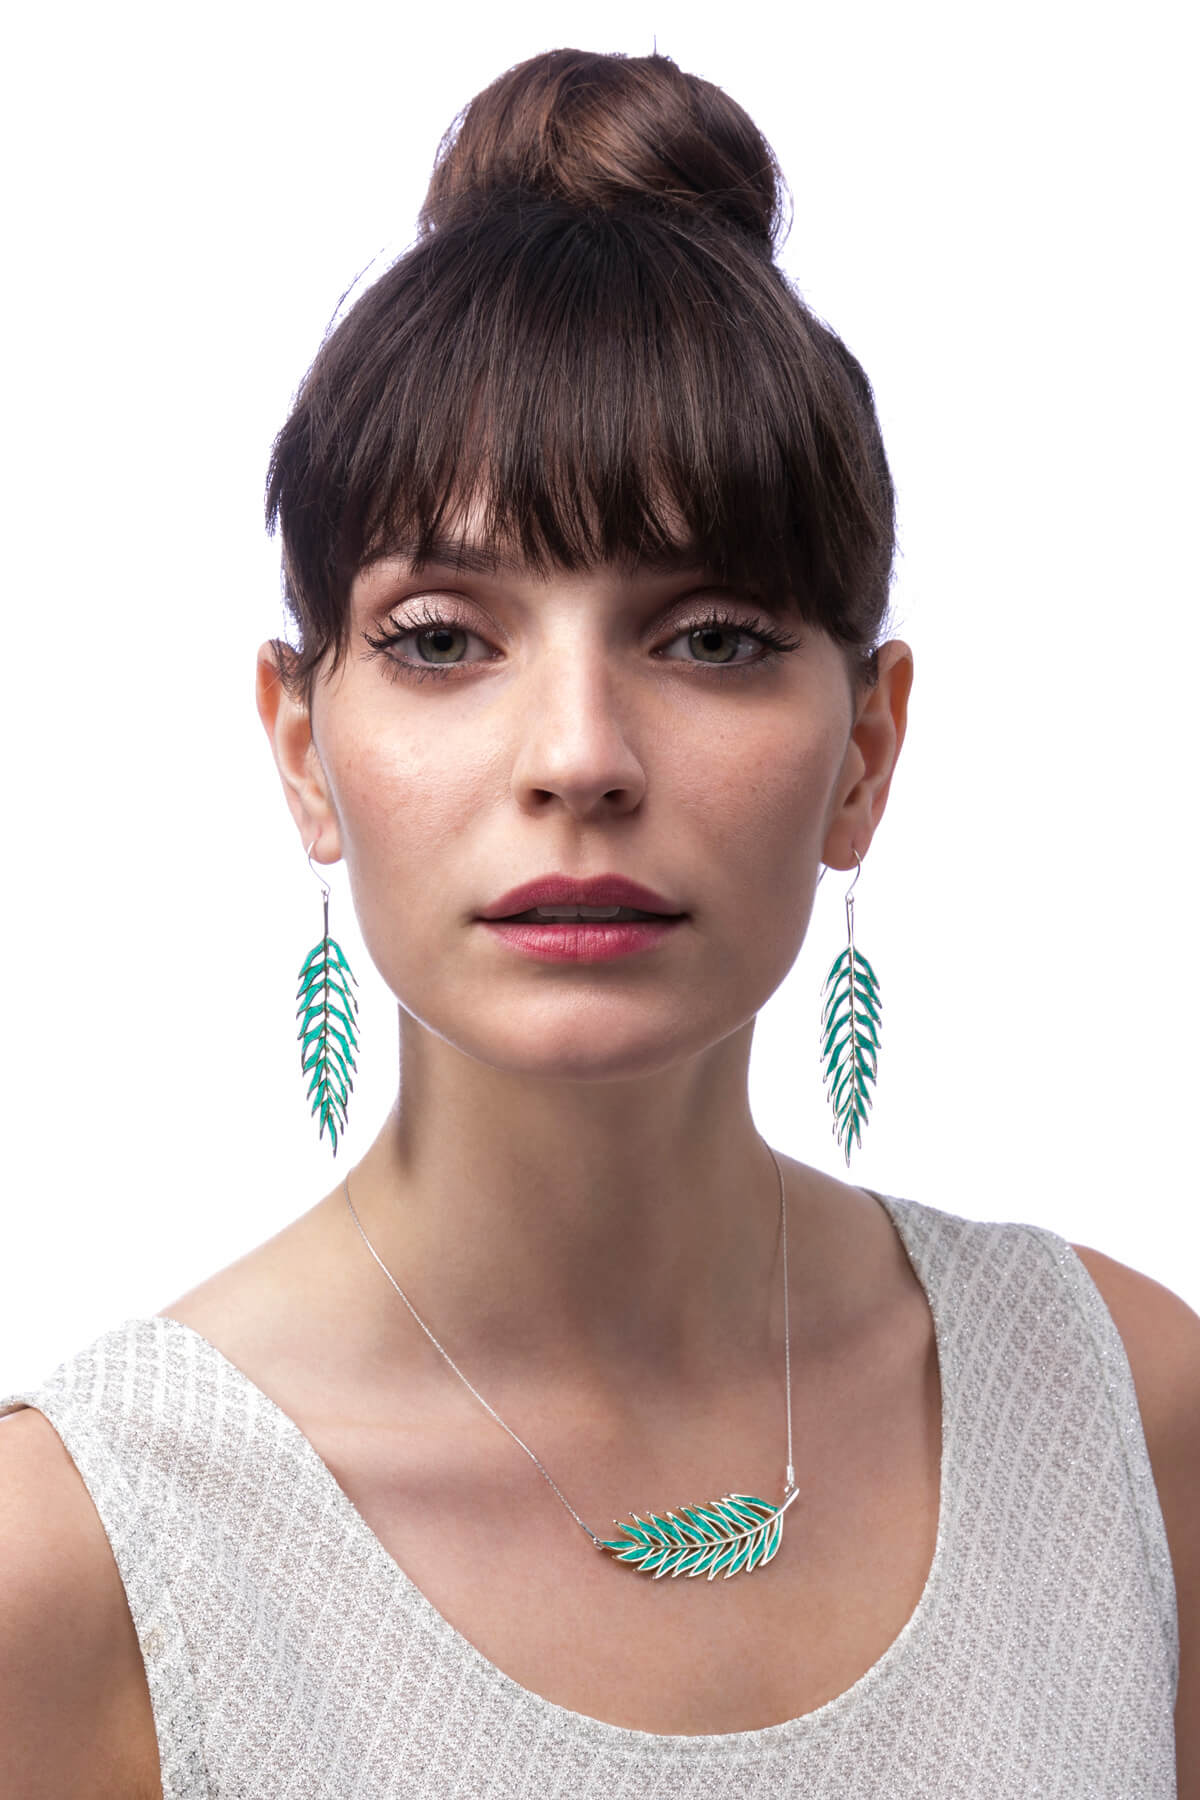 Handmade Silver Palm Leaf Earrings and Necklace – Turquoise Pattern